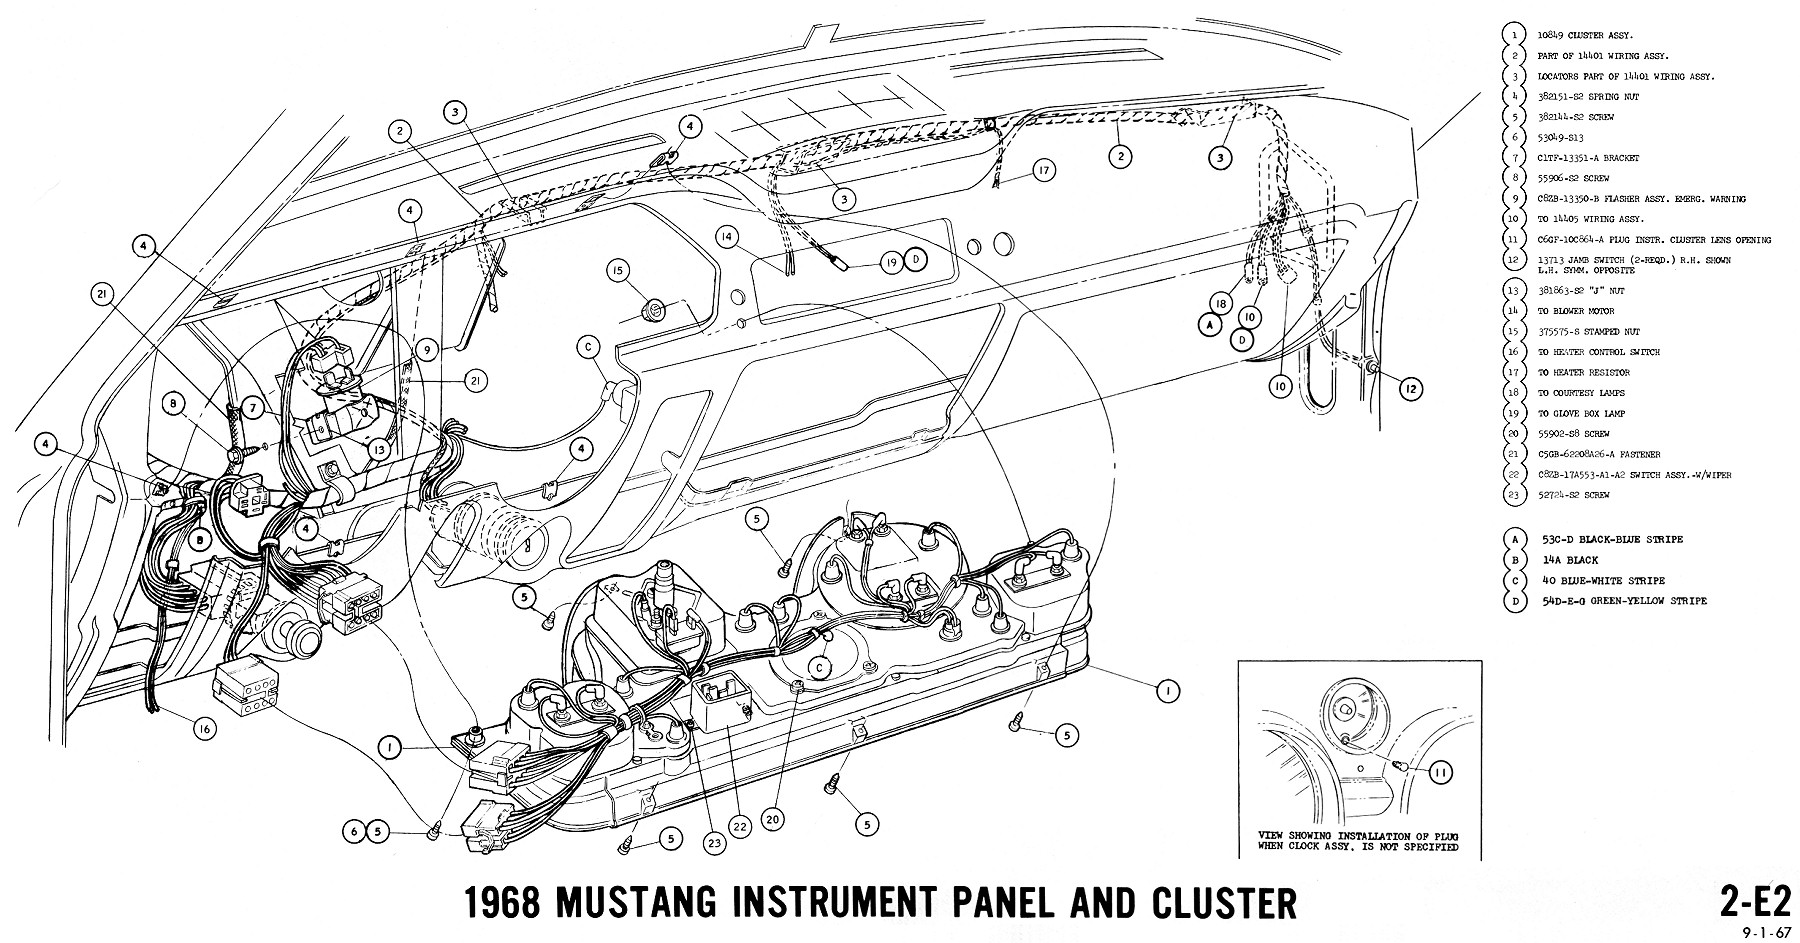 1968 mustang wiring diagram instruments 2 1968 mustang wiring diagrams and vacuum schematics average joe 1966 mustang wiring diagrams at nearapp.co